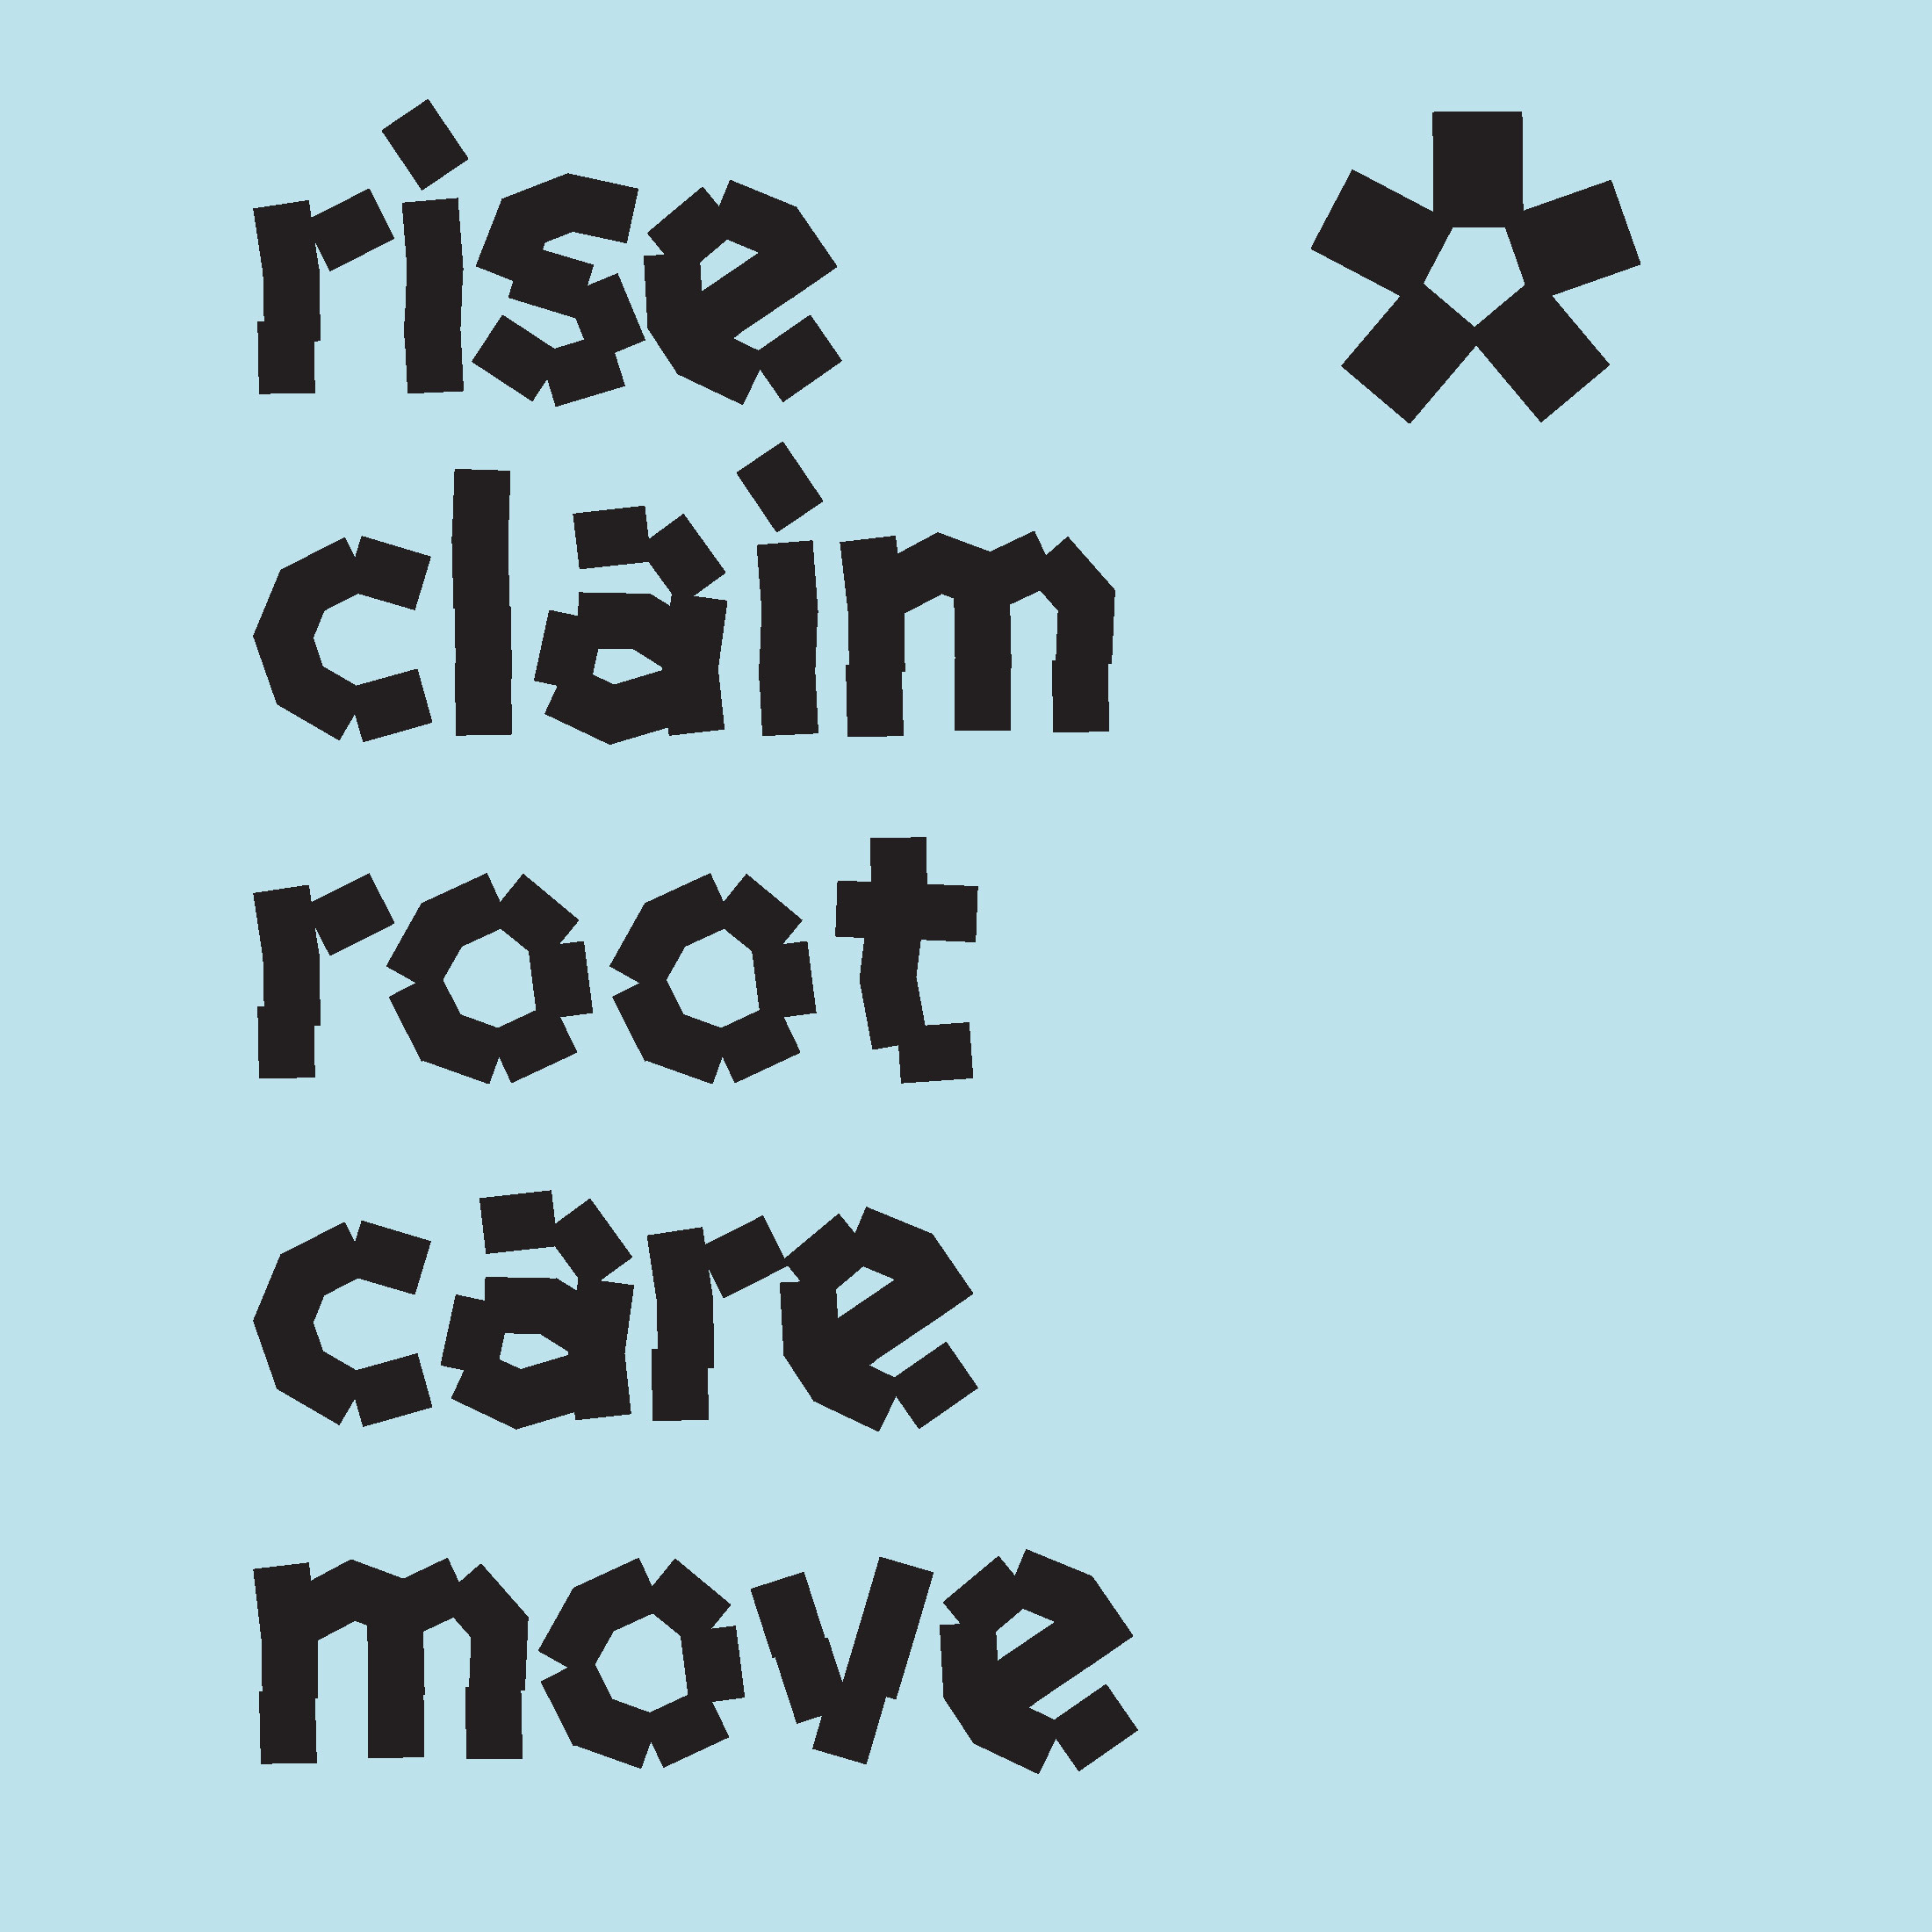 Rise. Claim. Root. Care. Move.